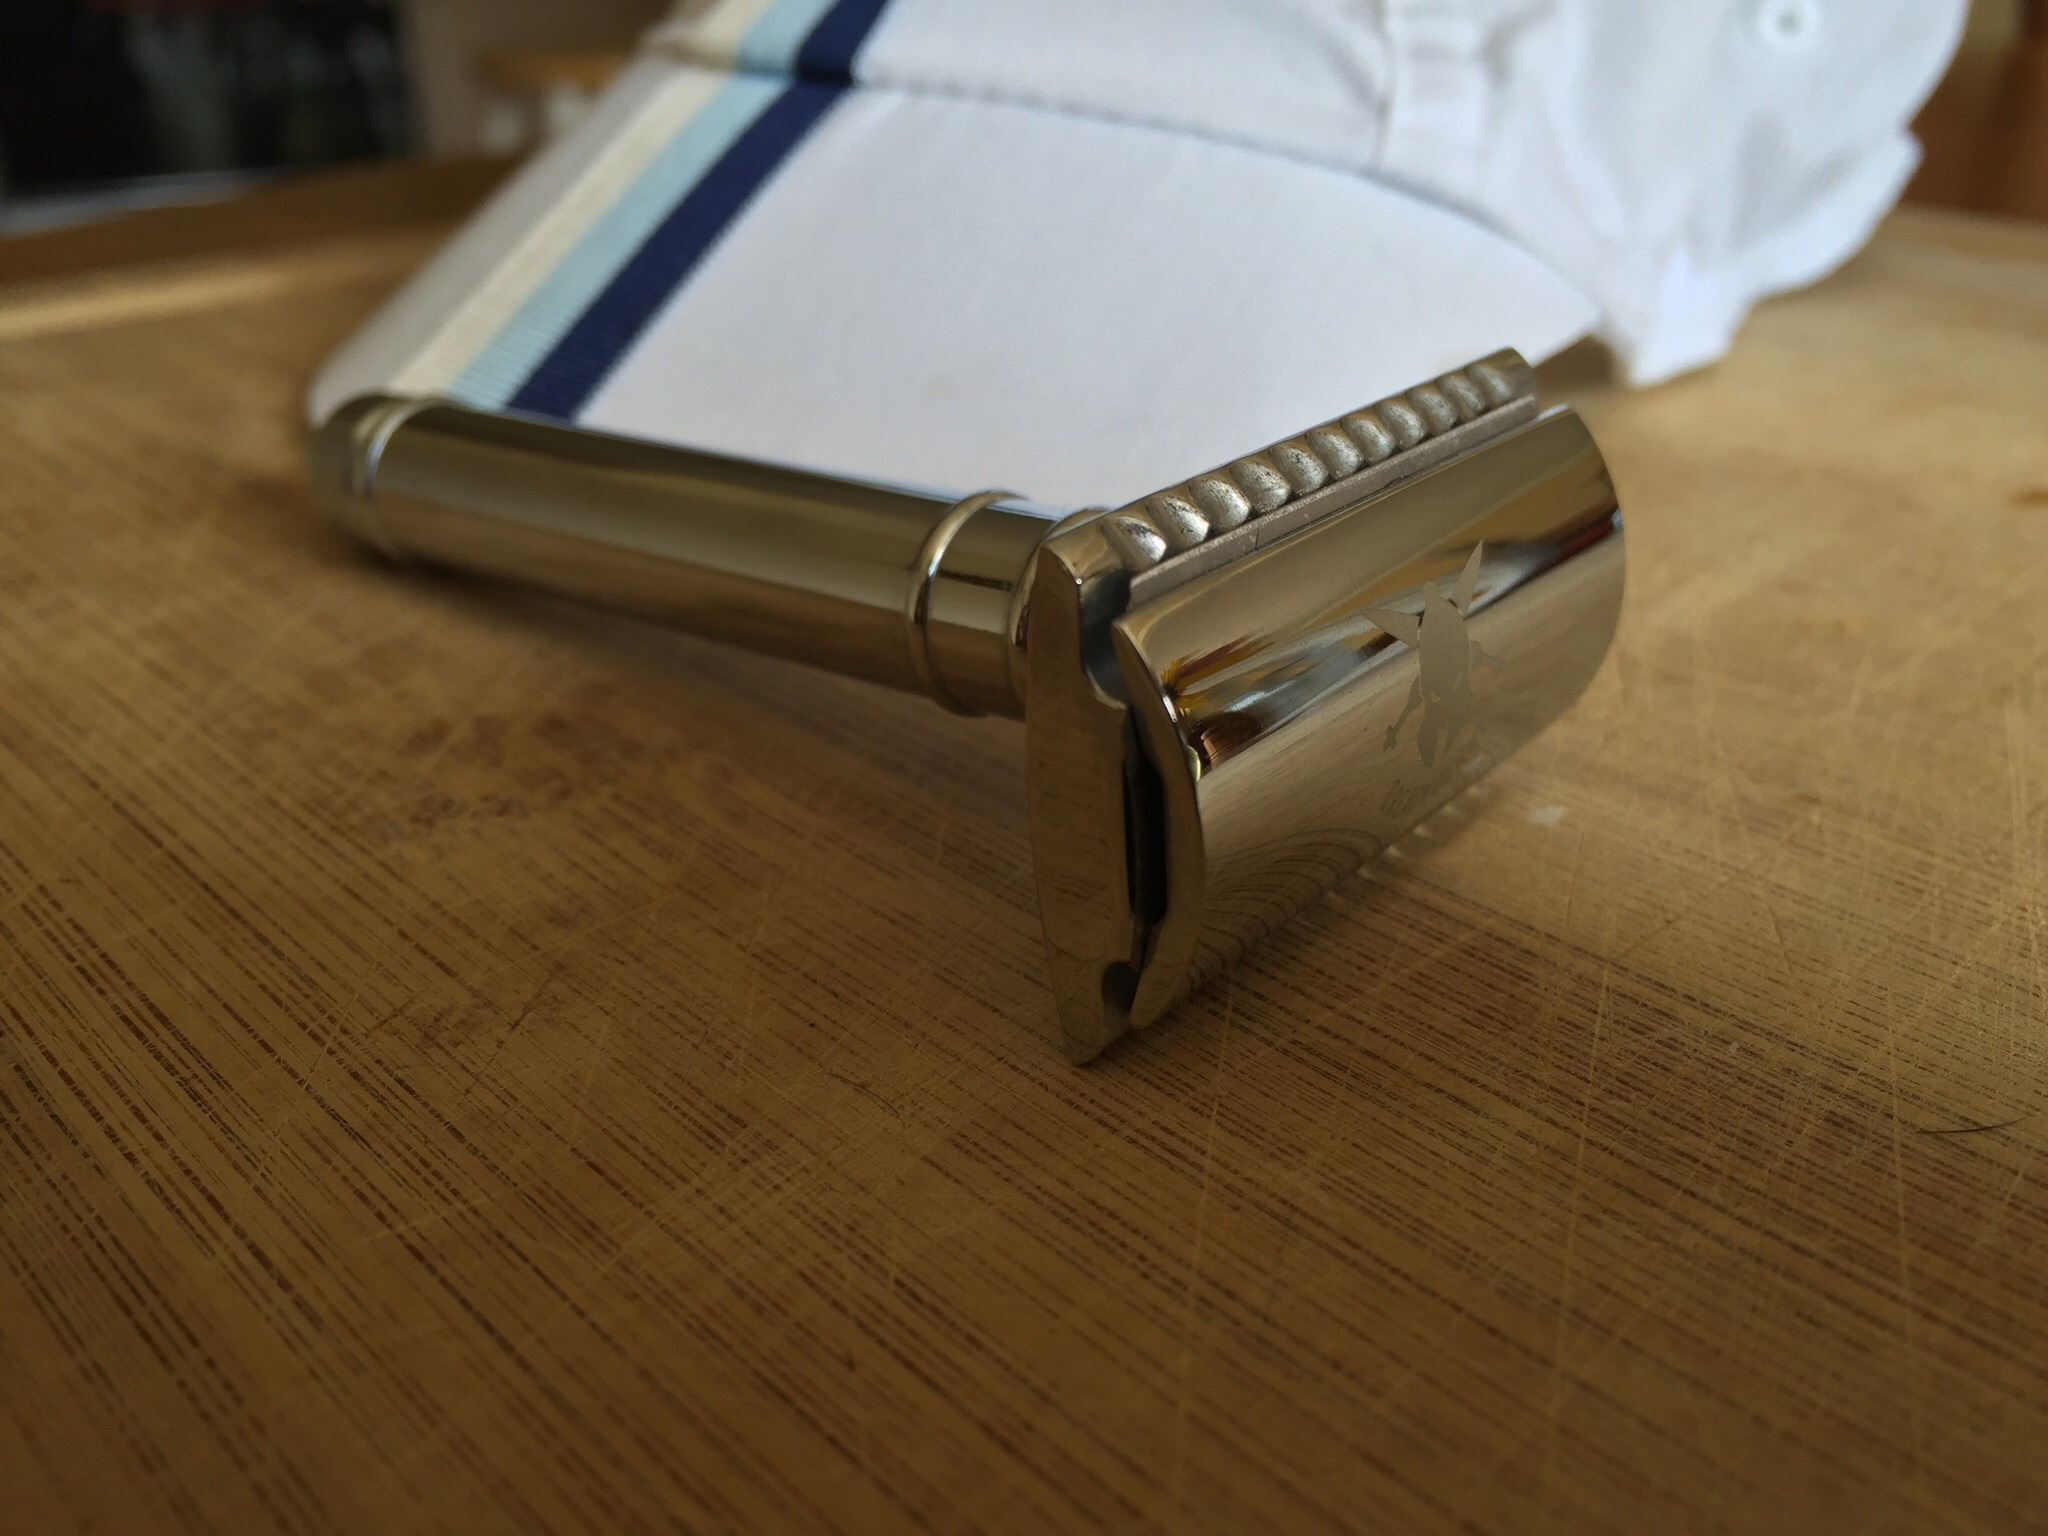 The Spartan double-edged (safety) razor available by Dreadnought.